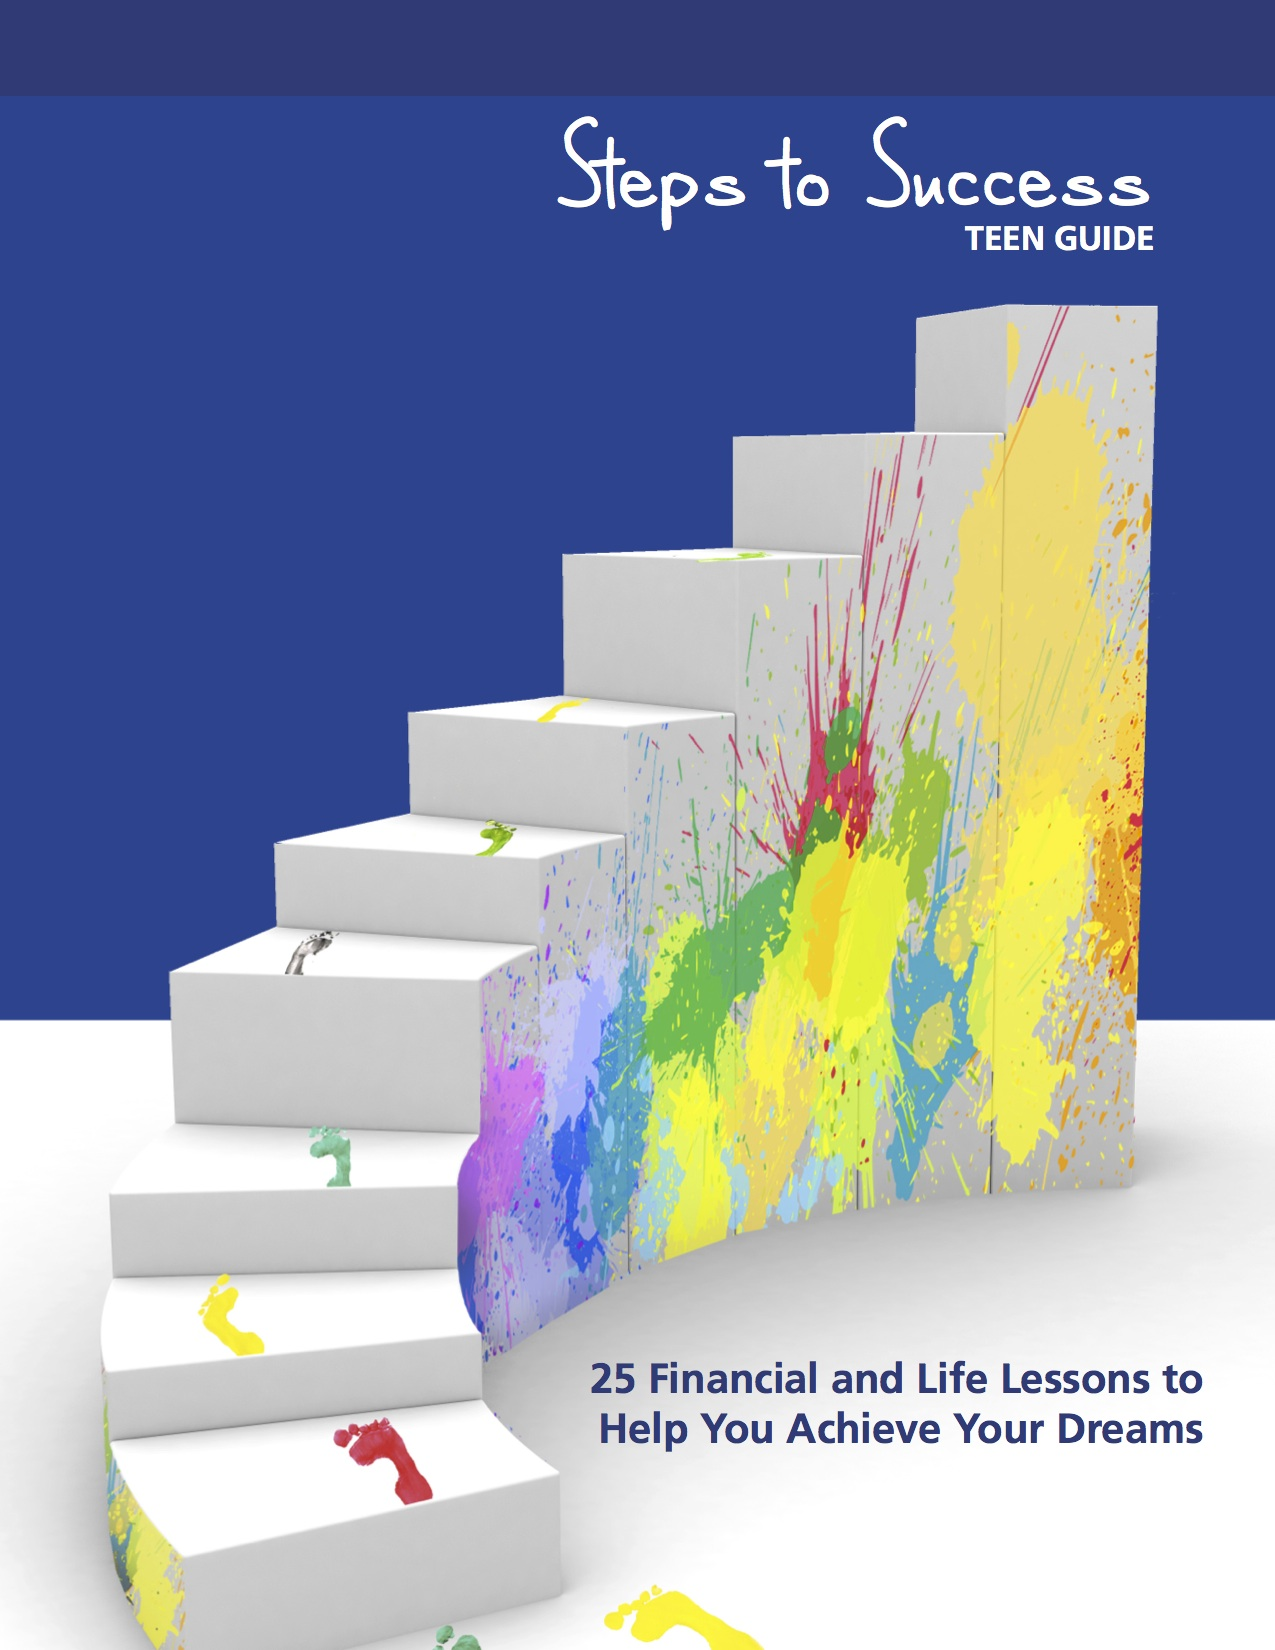 Steps to Success Teen Guide by Nancy Phillips